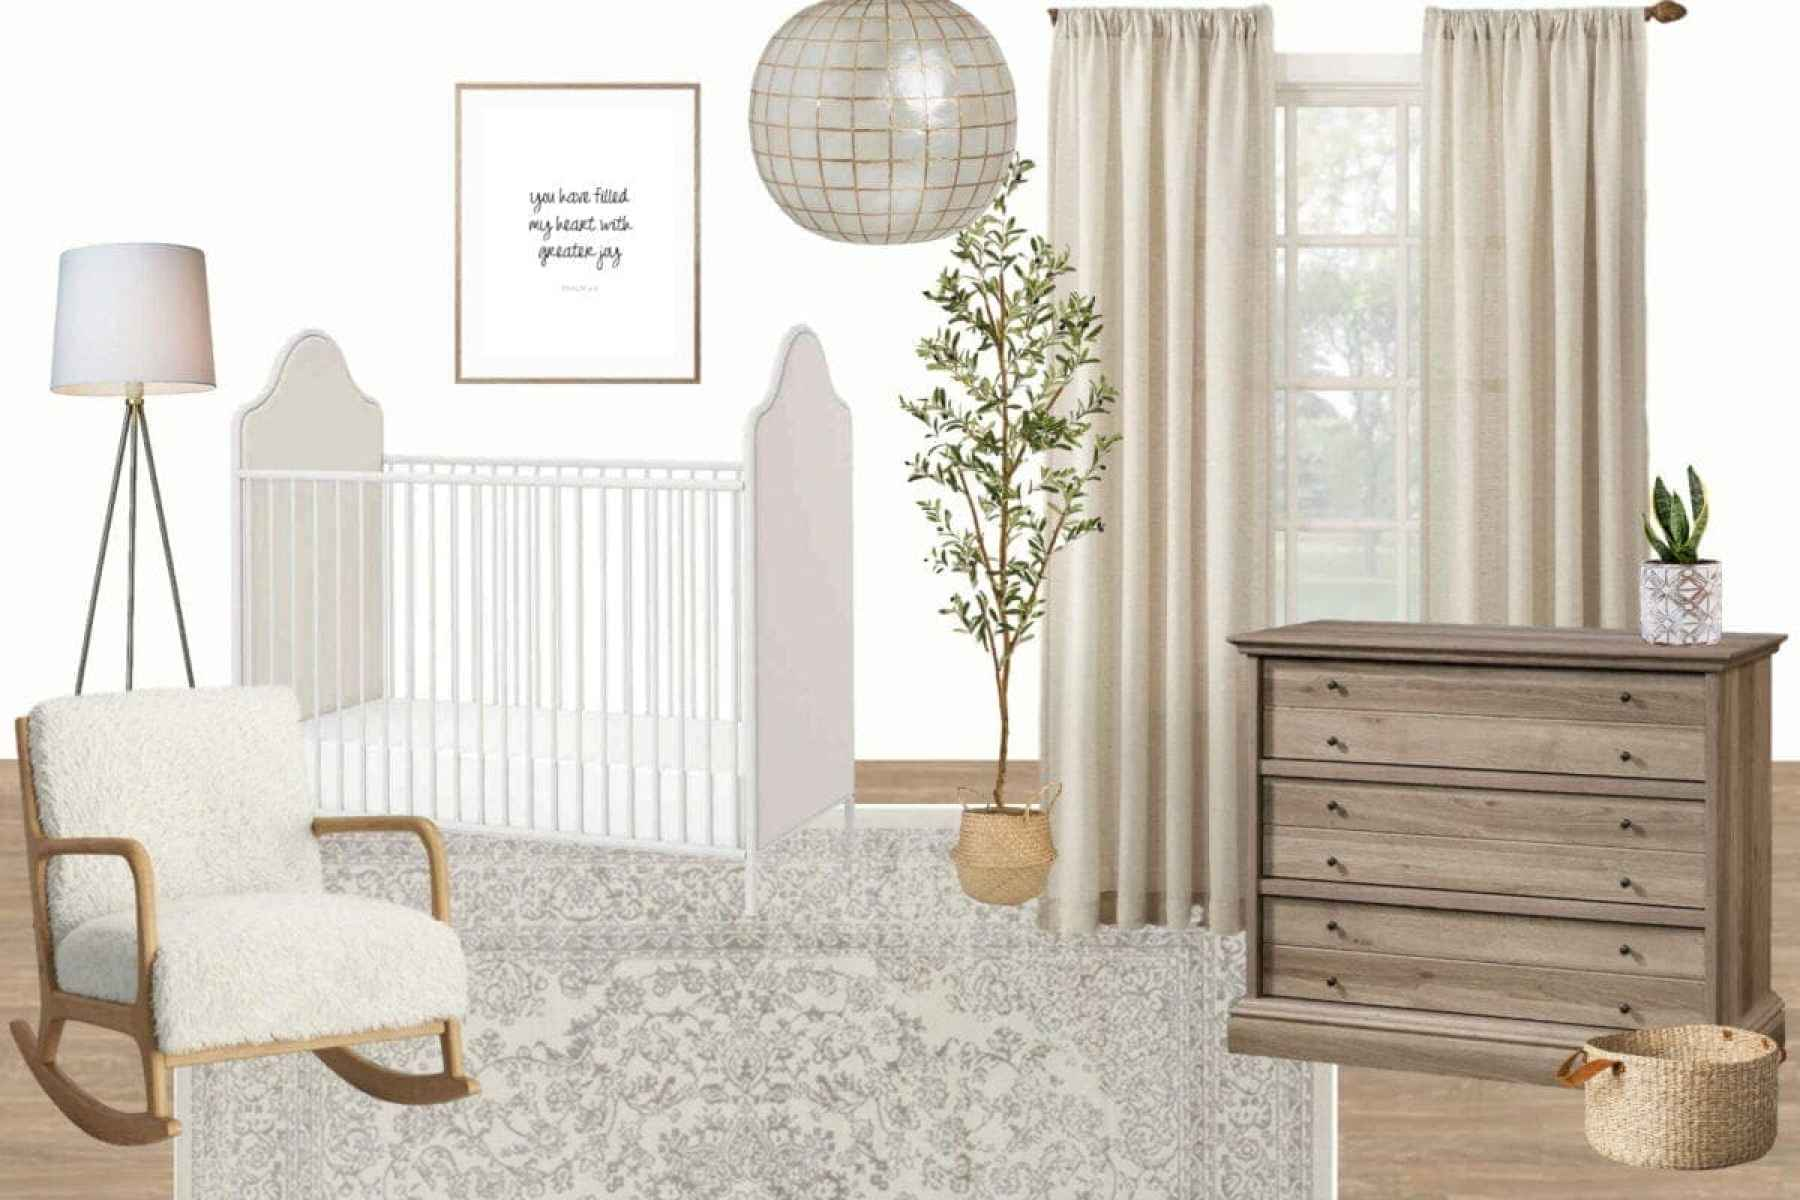 Gender Neutral Nursery - 4 gender neutral nursery ideas for a smaller budget and how to create your own mood boards to plan any room design.